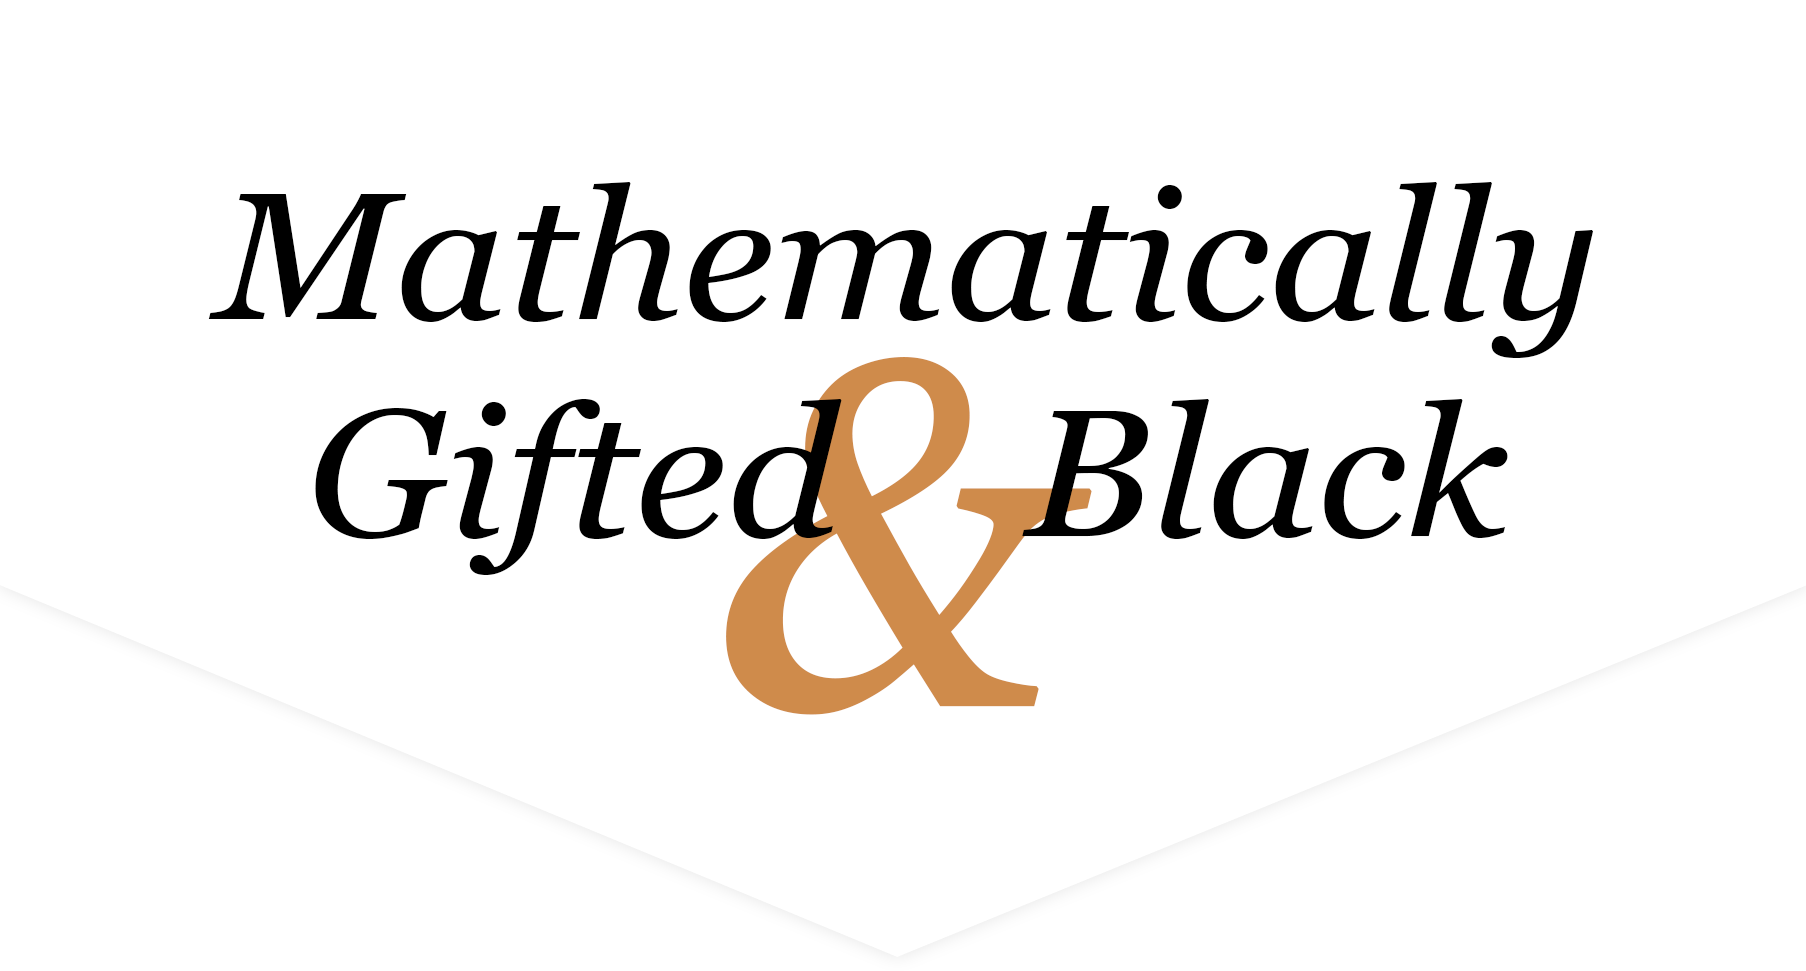 Mathematically Ted Amp Black In